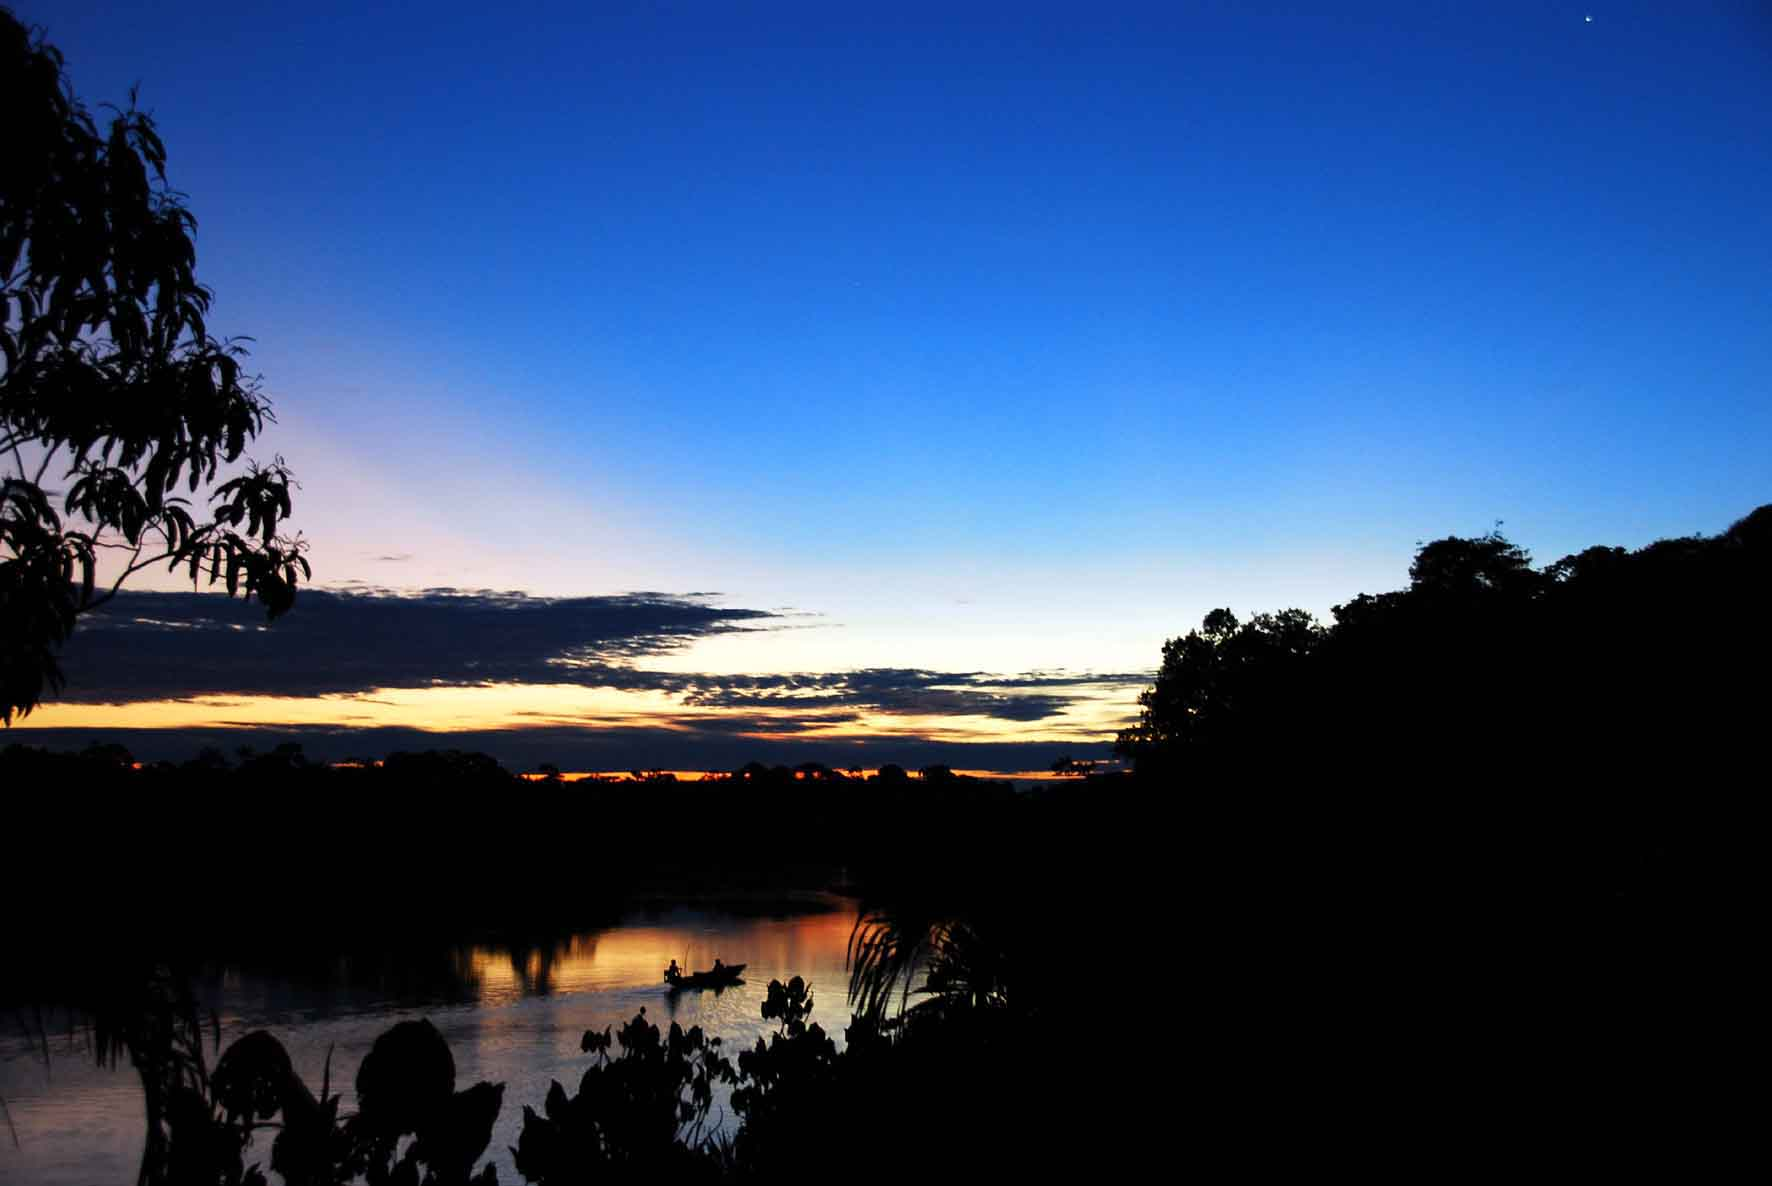 Amazon Jungle Sunset